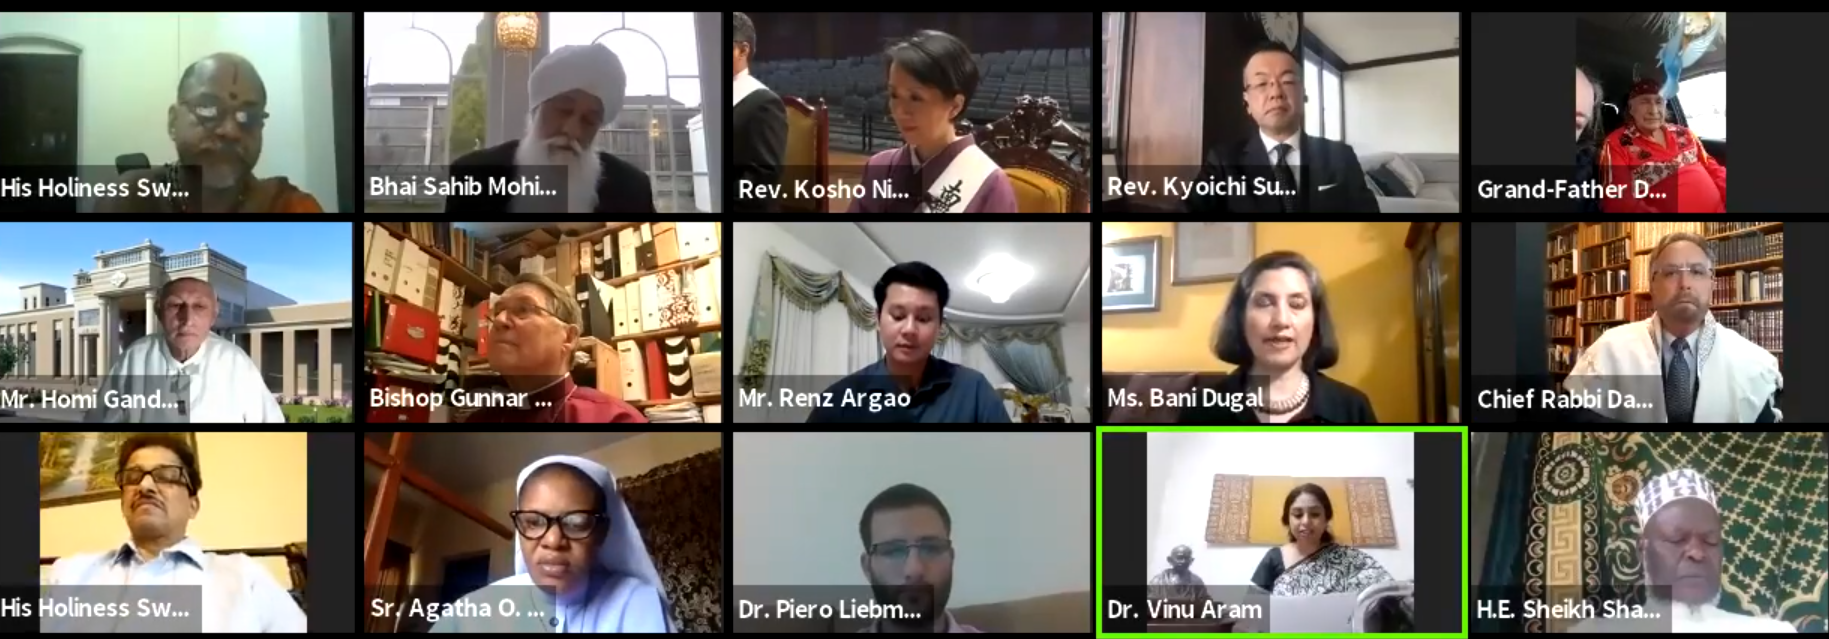 A virtual interfaith meeting held by Religions for Peace International. (Facebook)